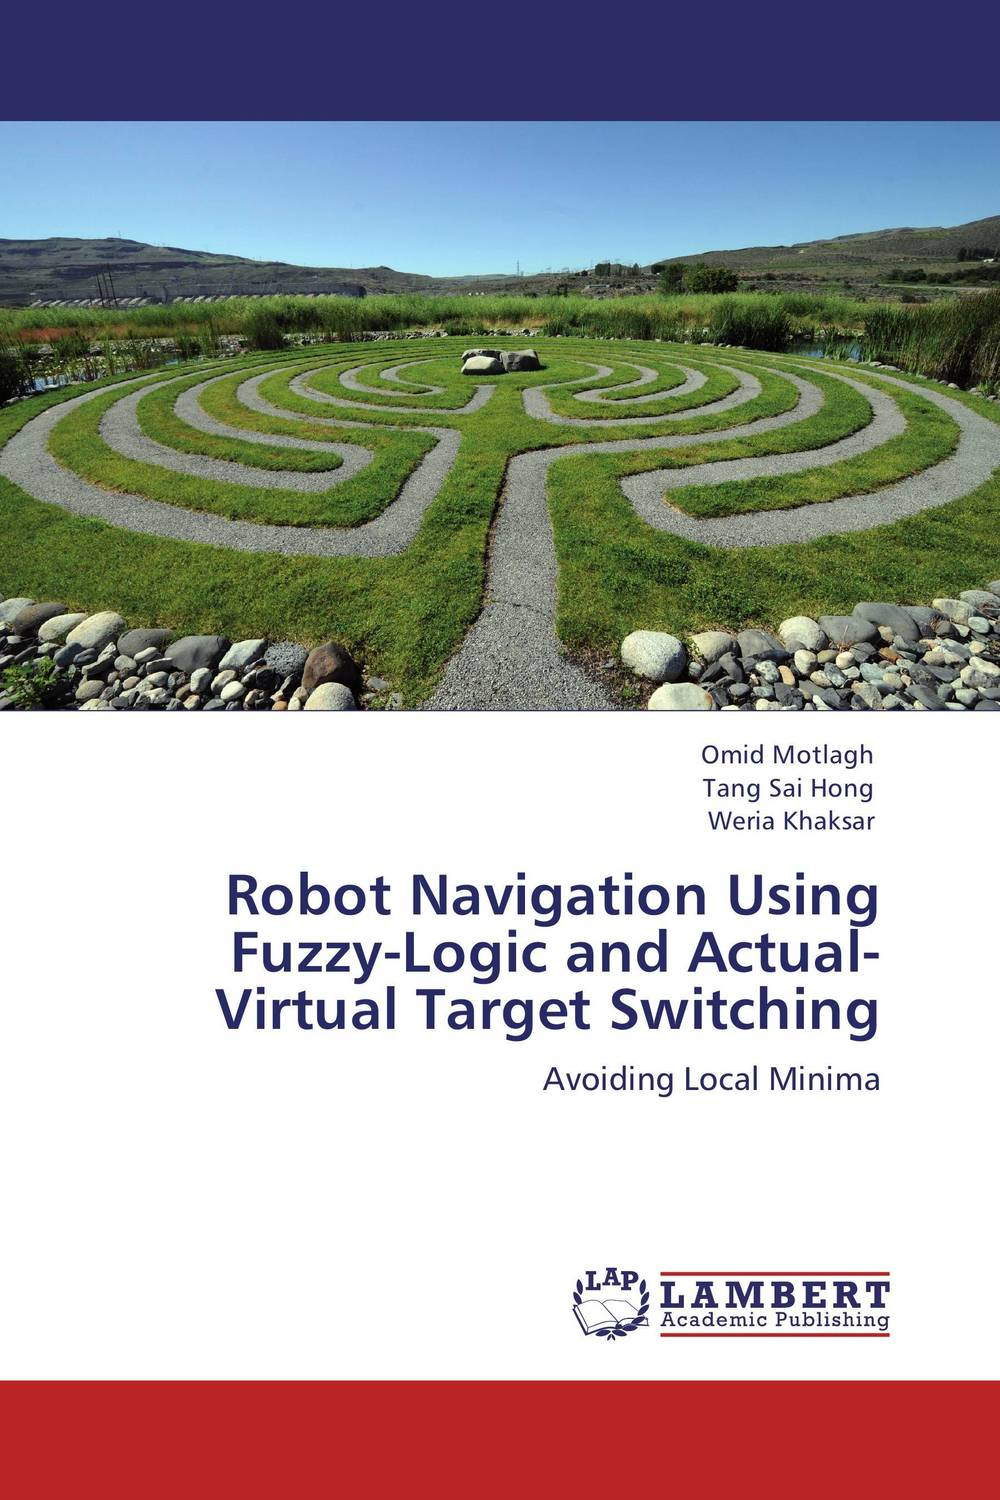 Robot Navigation Using Fuzzy-Logic and Actual-Virtual Target Switching mpso and mga approaches for mobile robot navigation